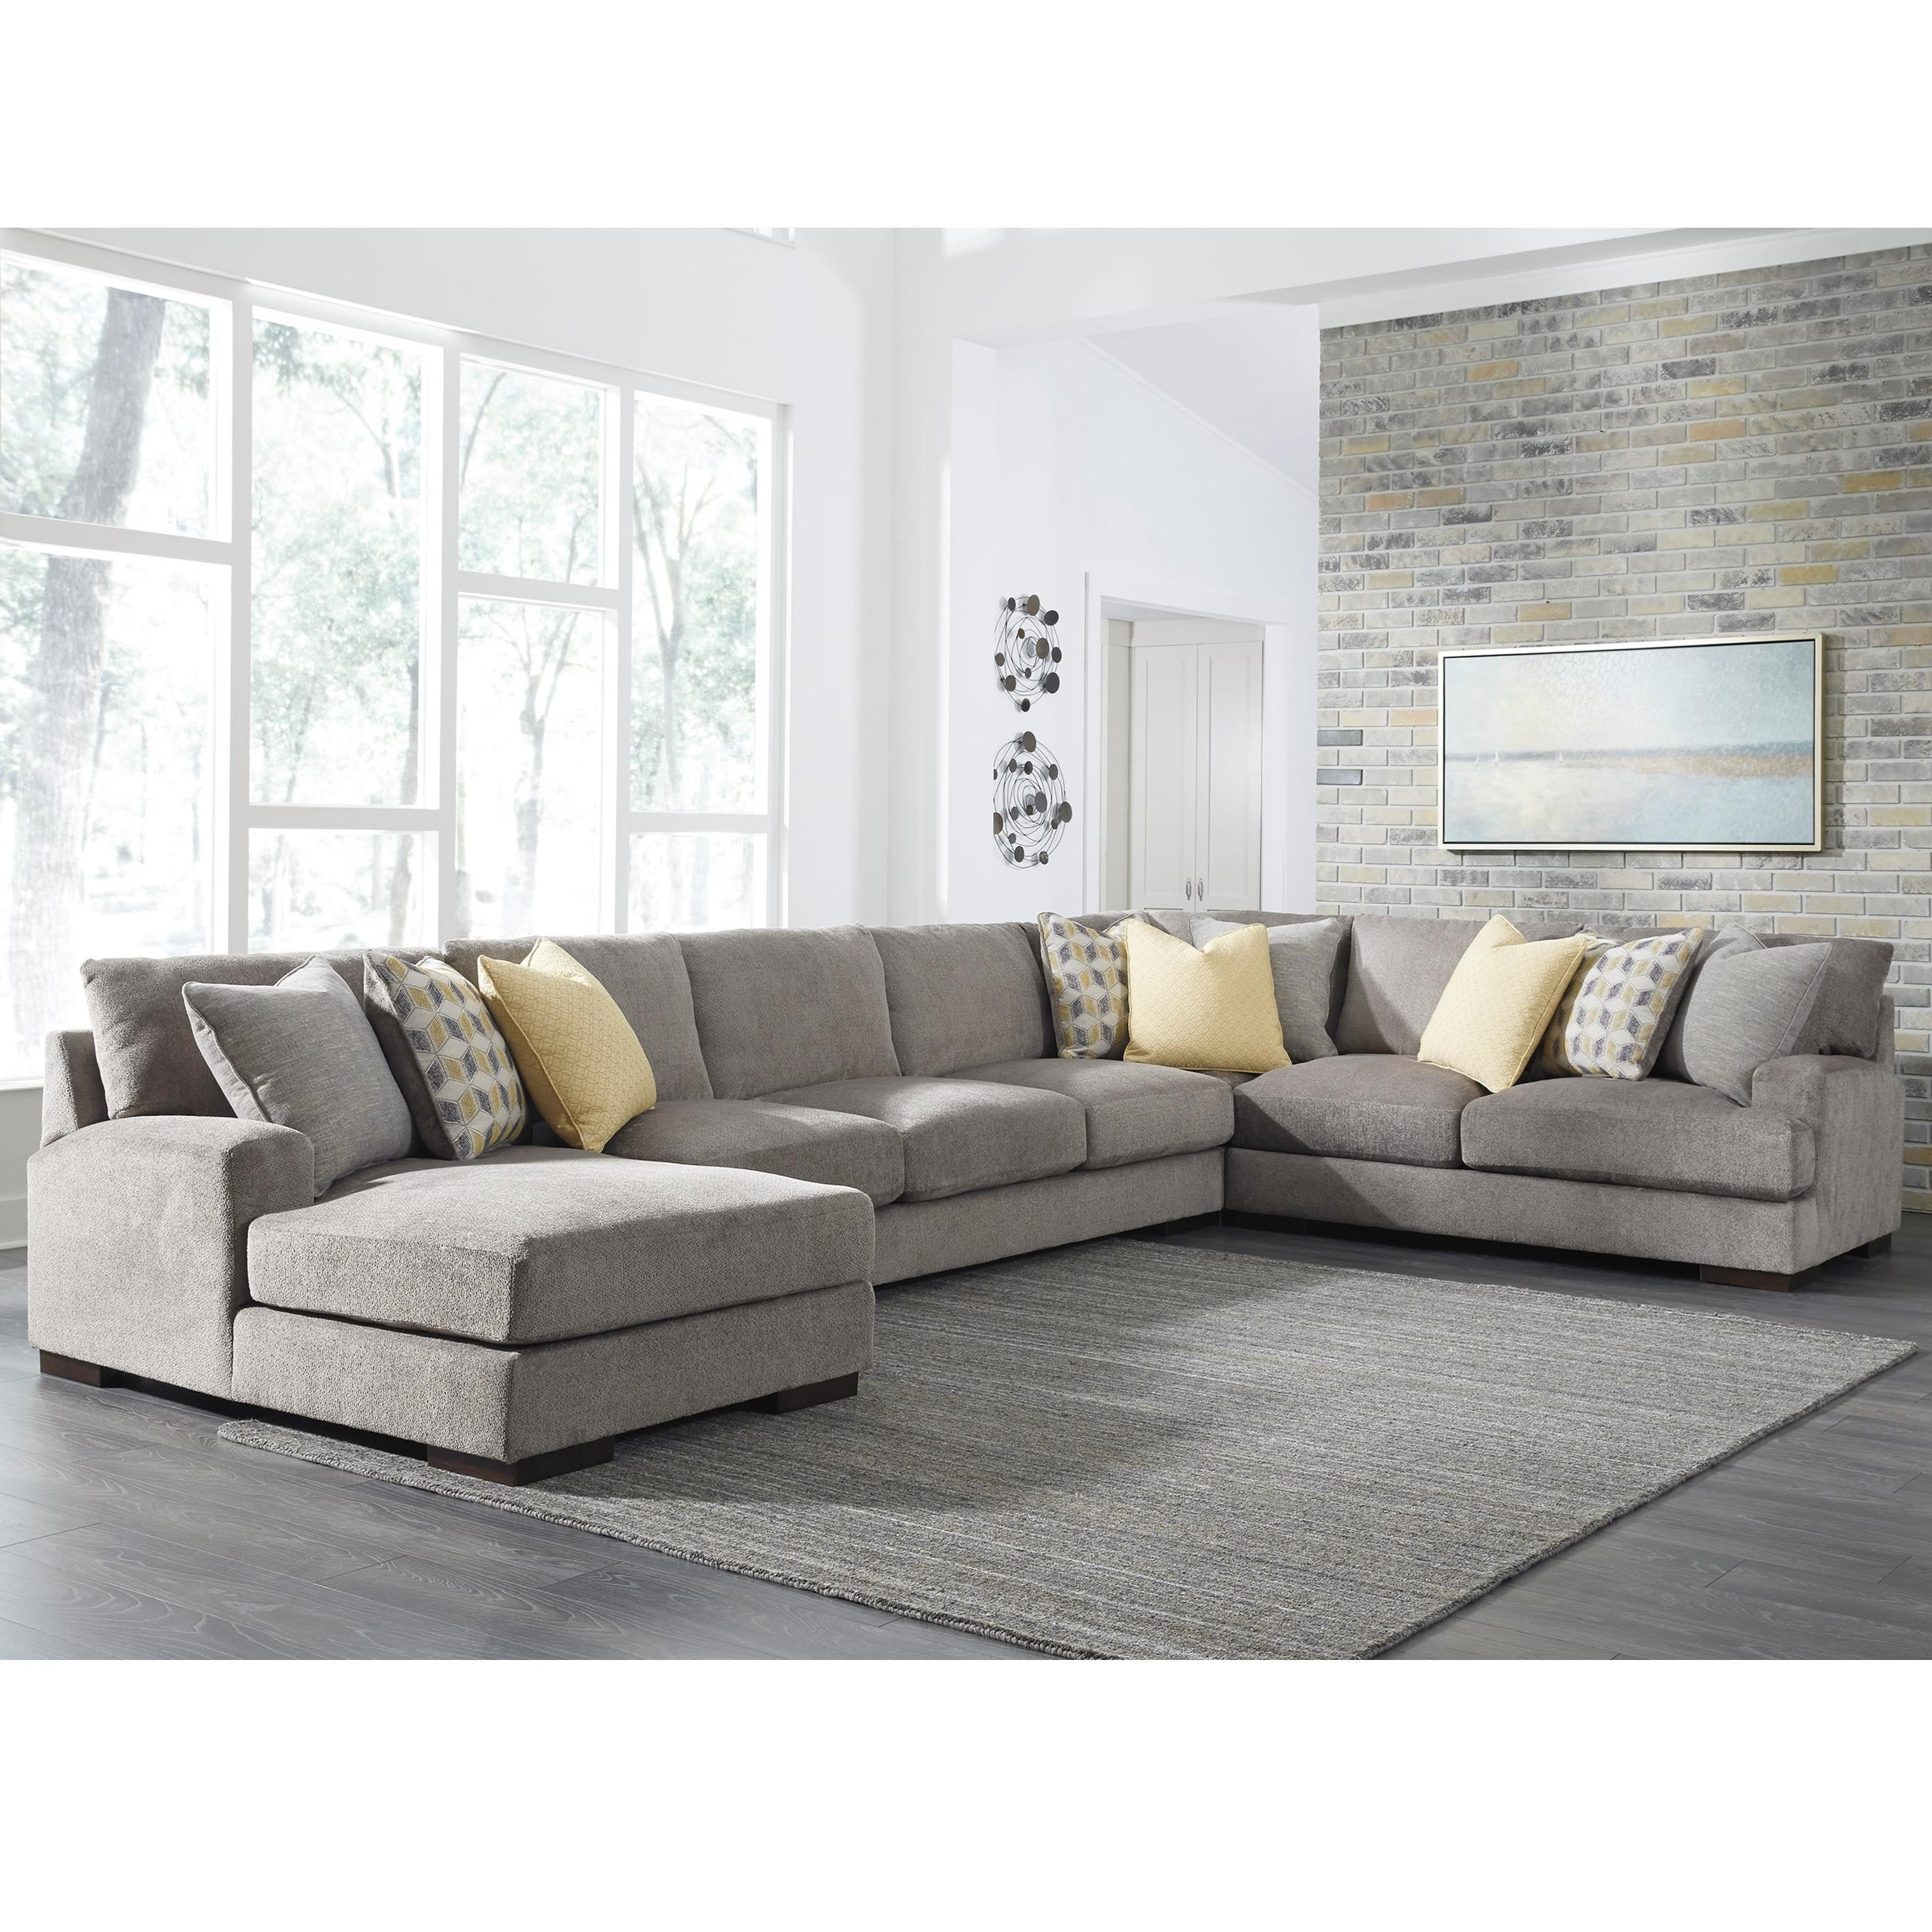 living p with room costco home uk fabric sectional tia piece corner sofas grey sofa pillows accent furniture